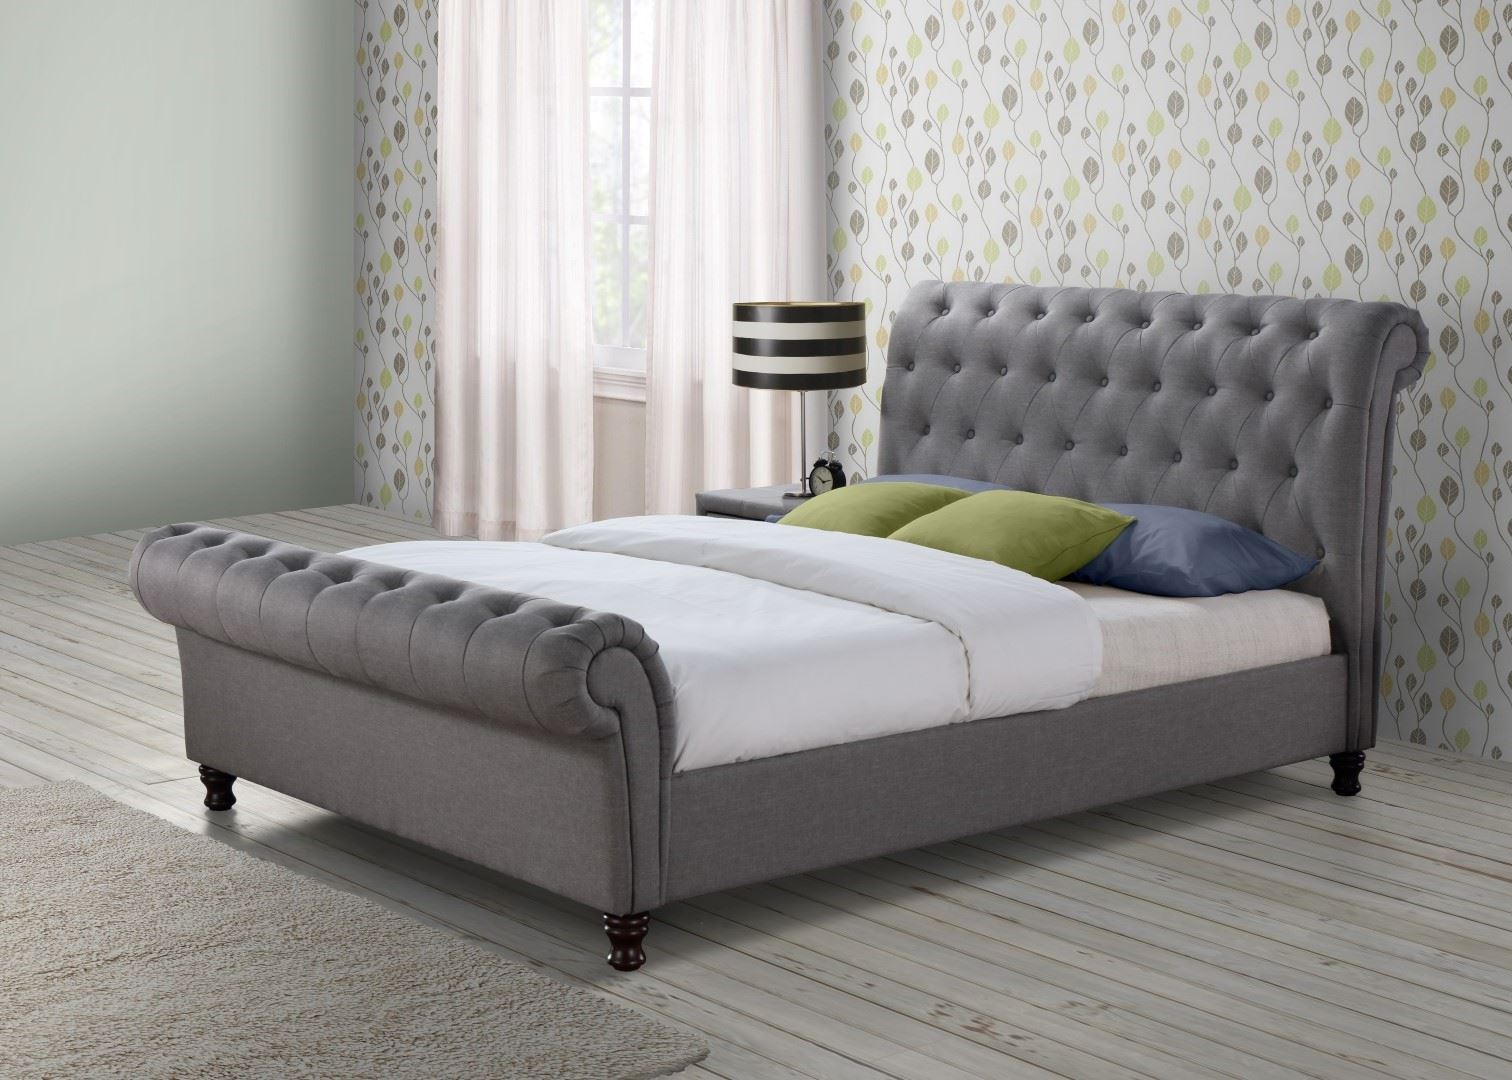 Castello Chesterfield Sleigh Grey Fabric 6FT 180cm Super King Size Bed Frame